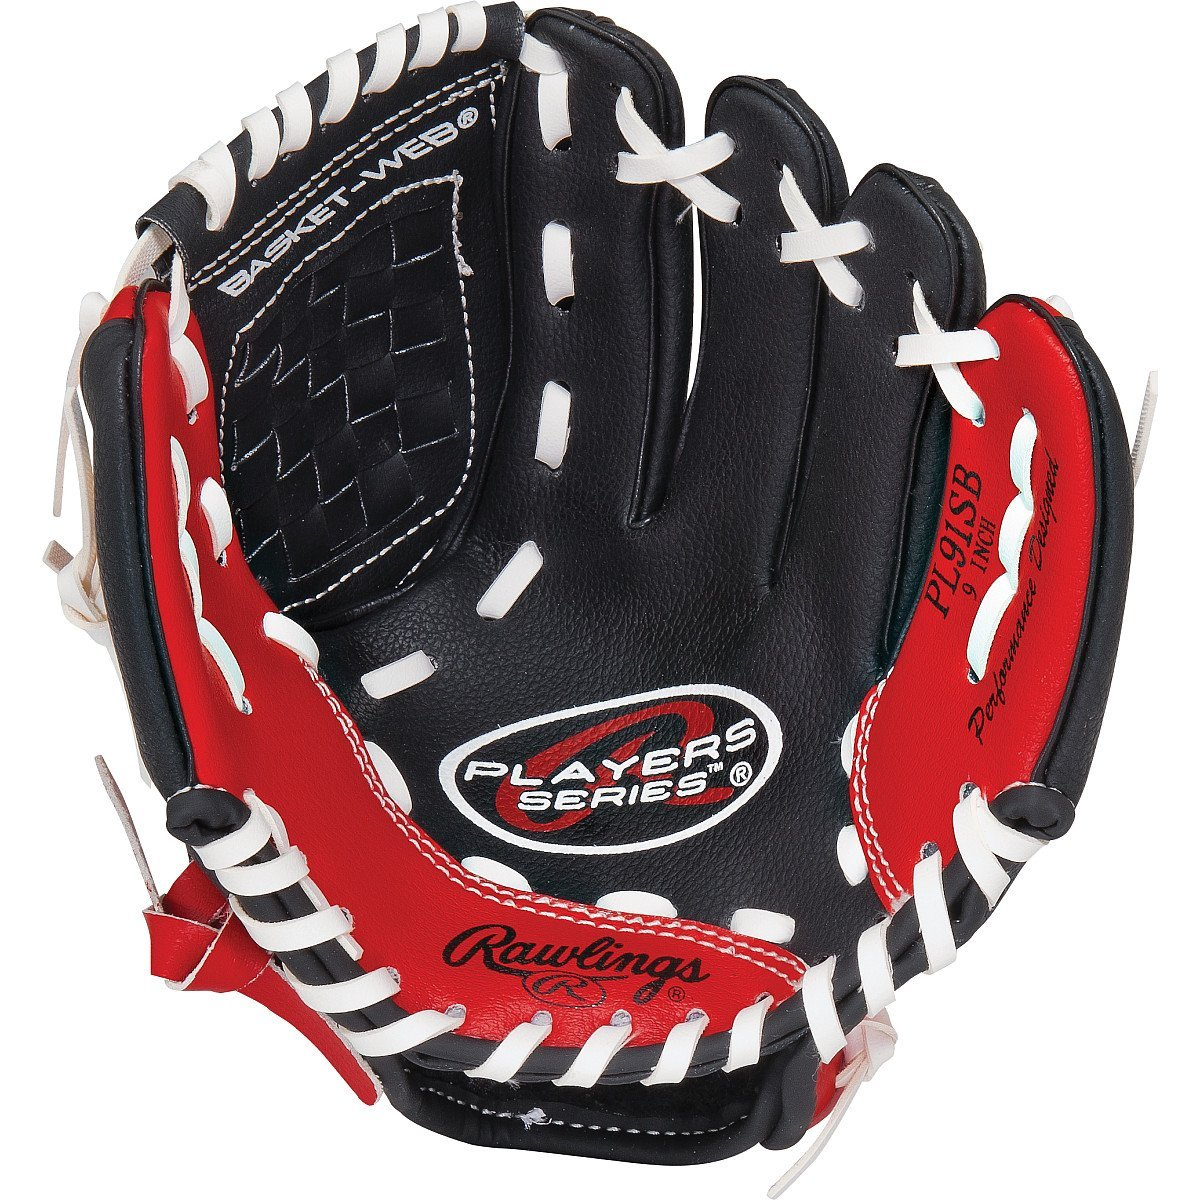 Boys Players Series 9-INCH Tee Ball Glove